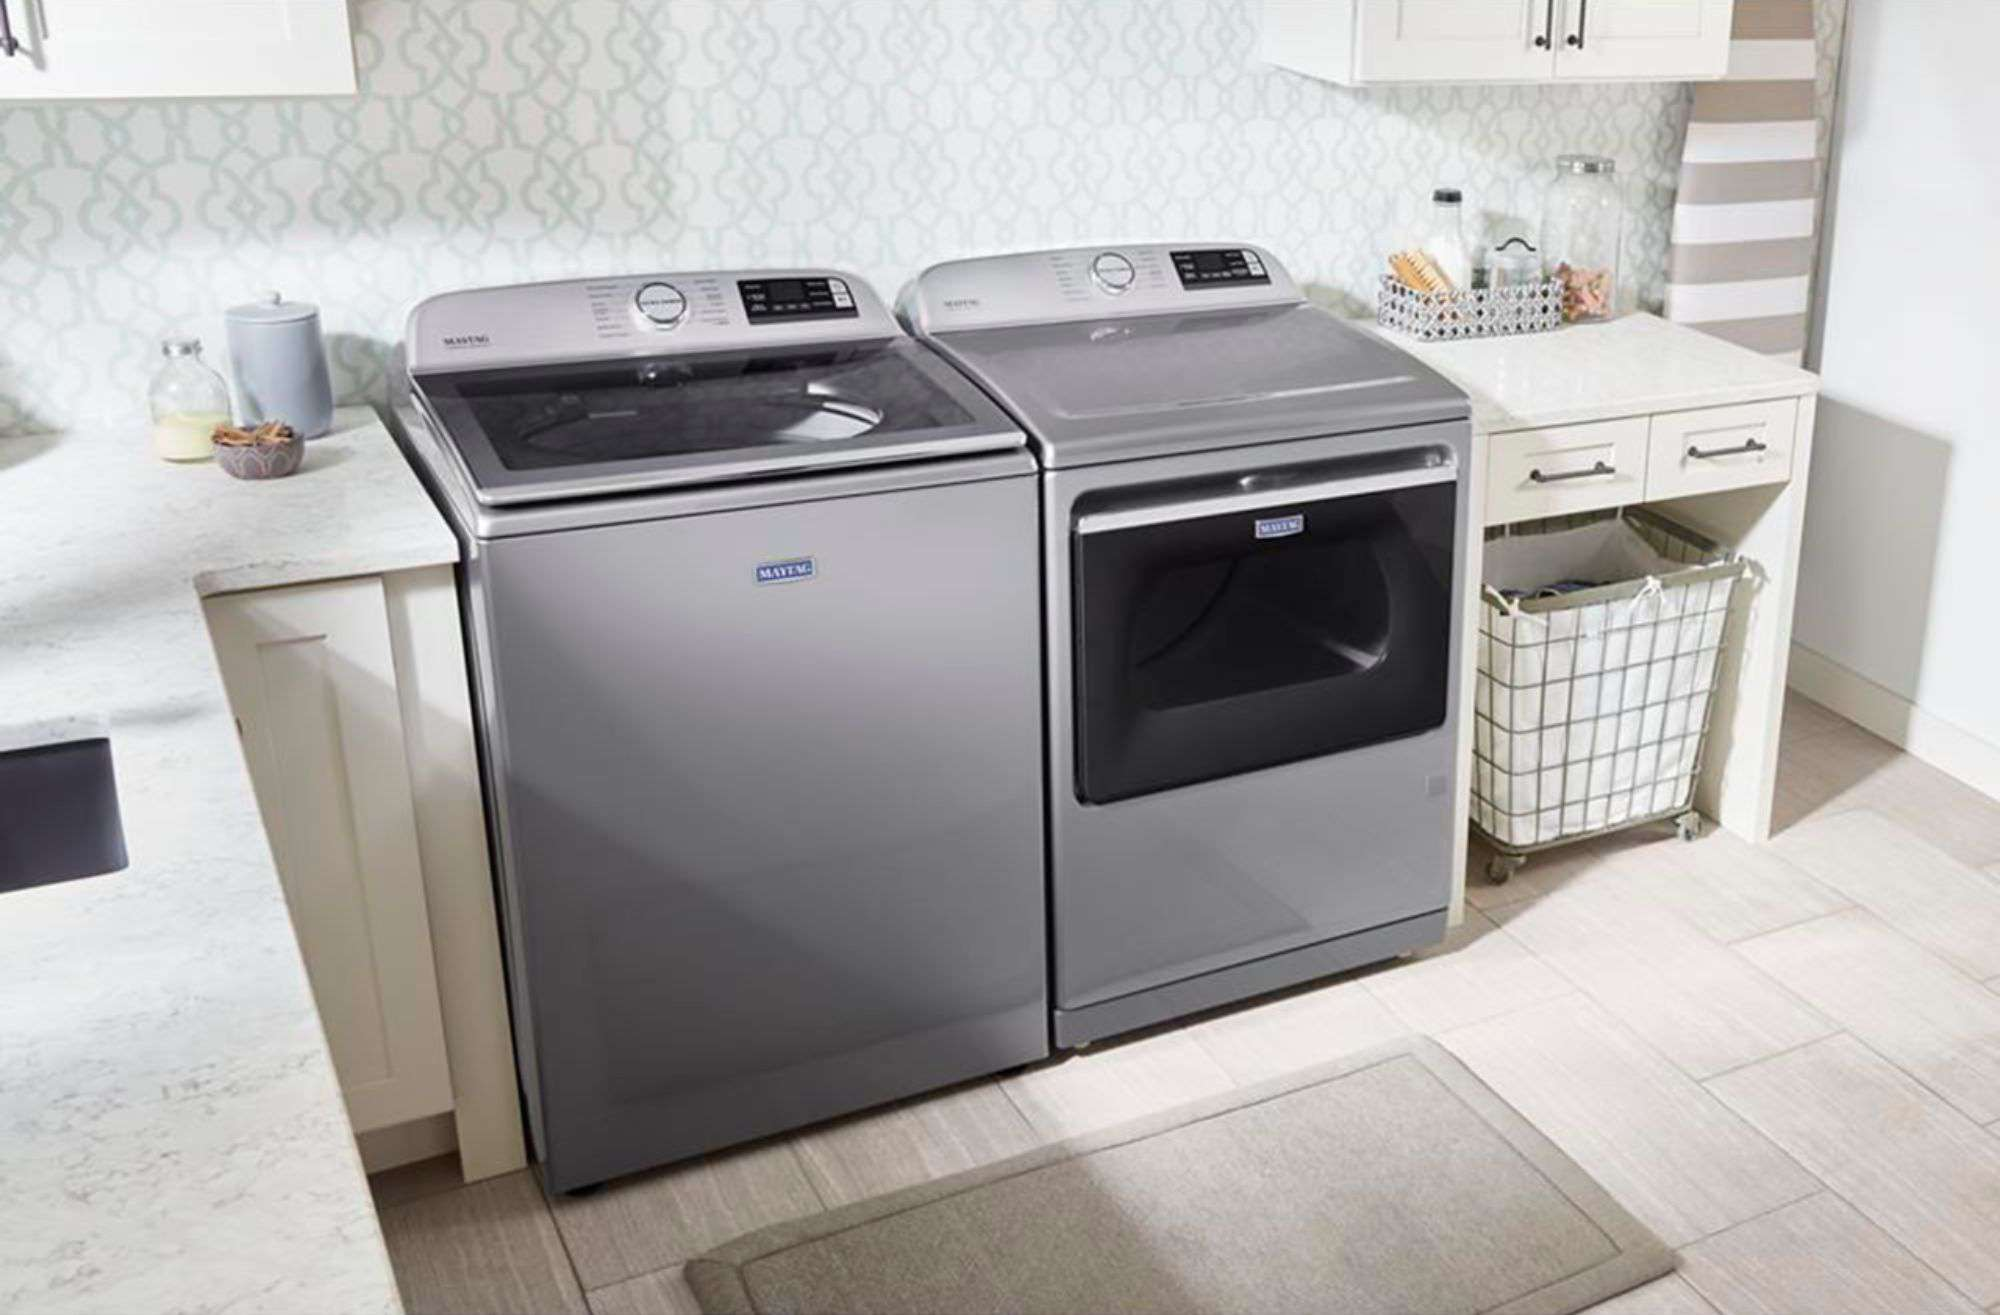 maytag-top-loading-washer-electric-vented-dryer-slate-smart